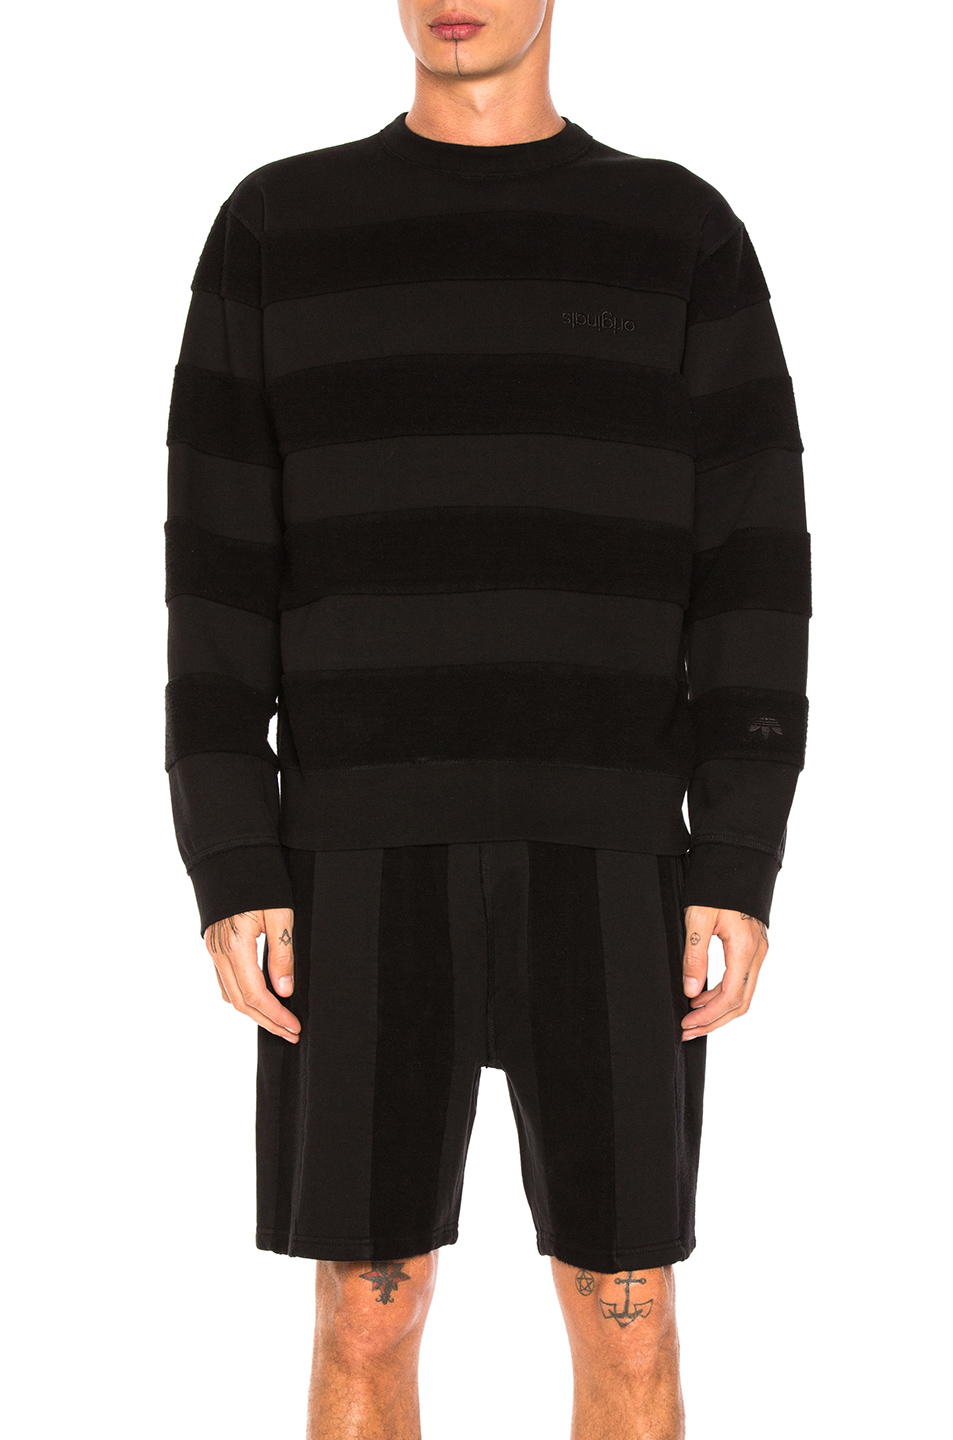 Photo of adidas by Alexander Wang Inout Crew Neck Sweater in Black - shop adidas by Alexander Wang menswear